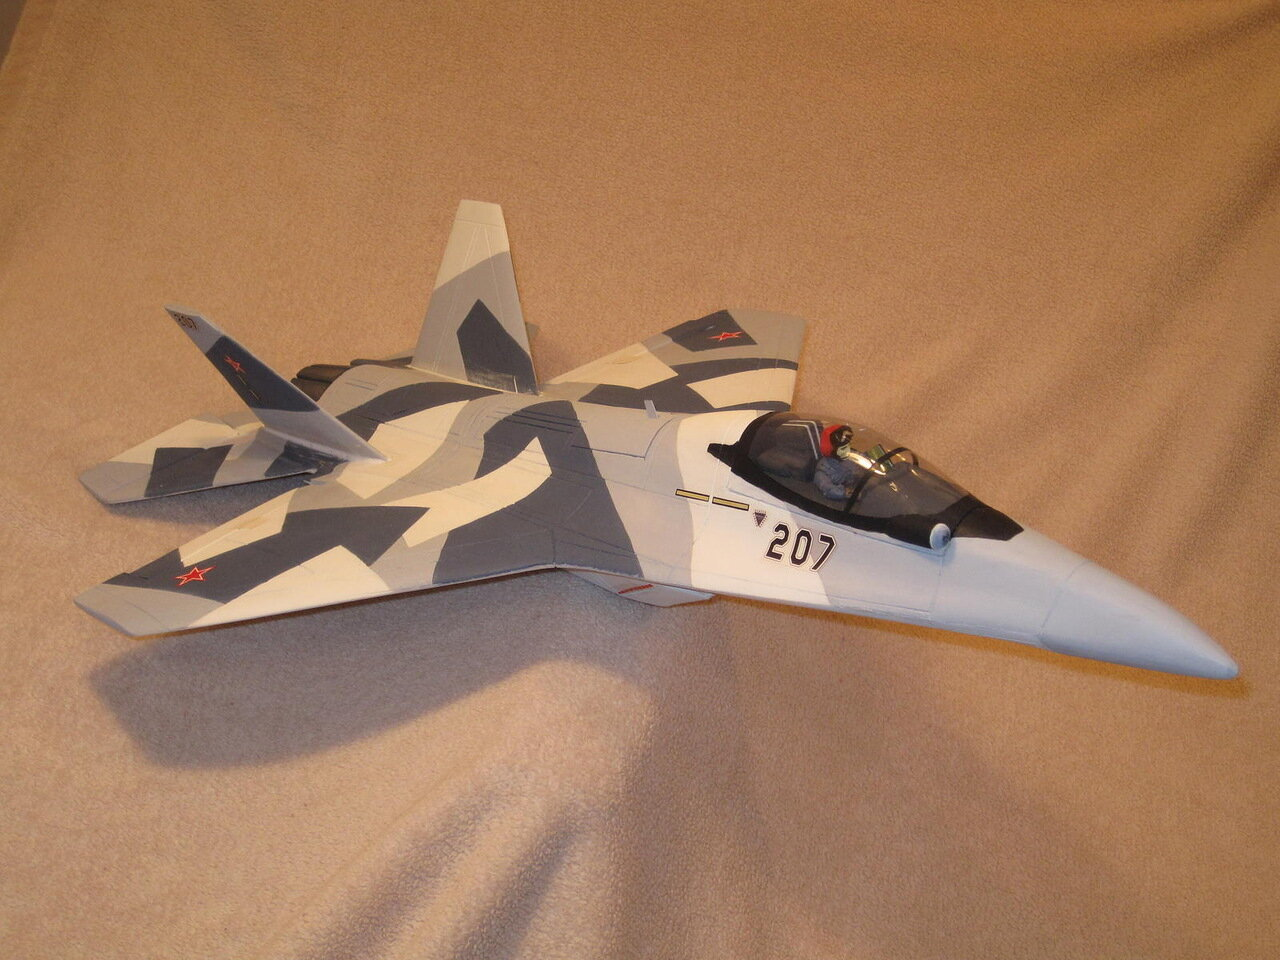 Russia's 6th-generation fighters - Page 3 0_b97ae_dd63066a_XXXL